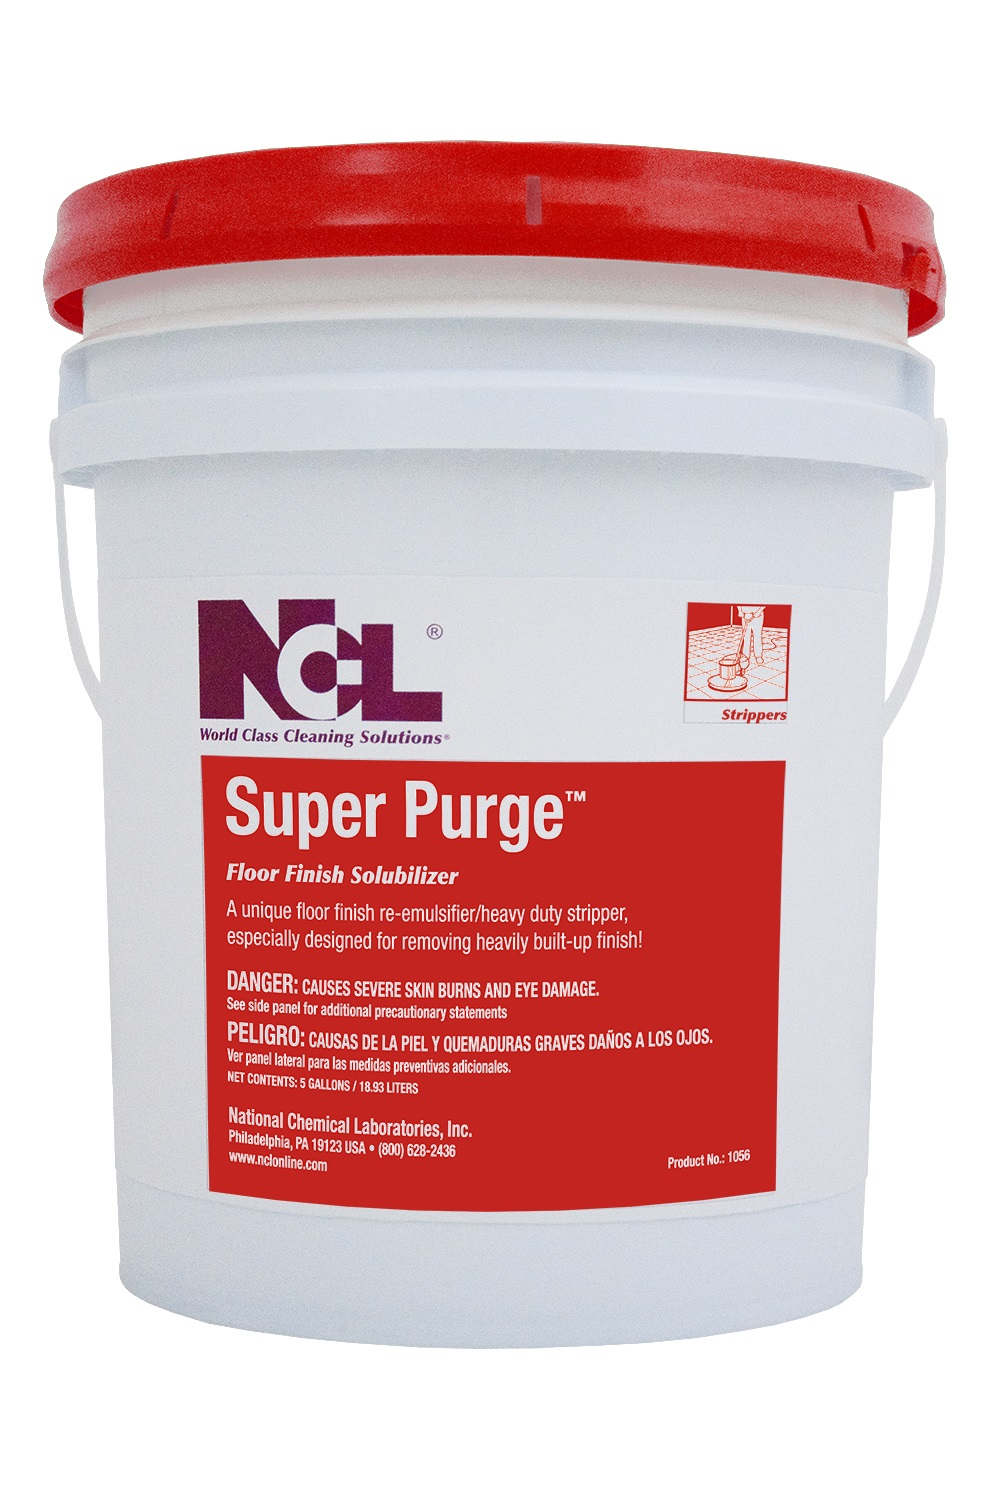 NCL Super Purge Floor Finish